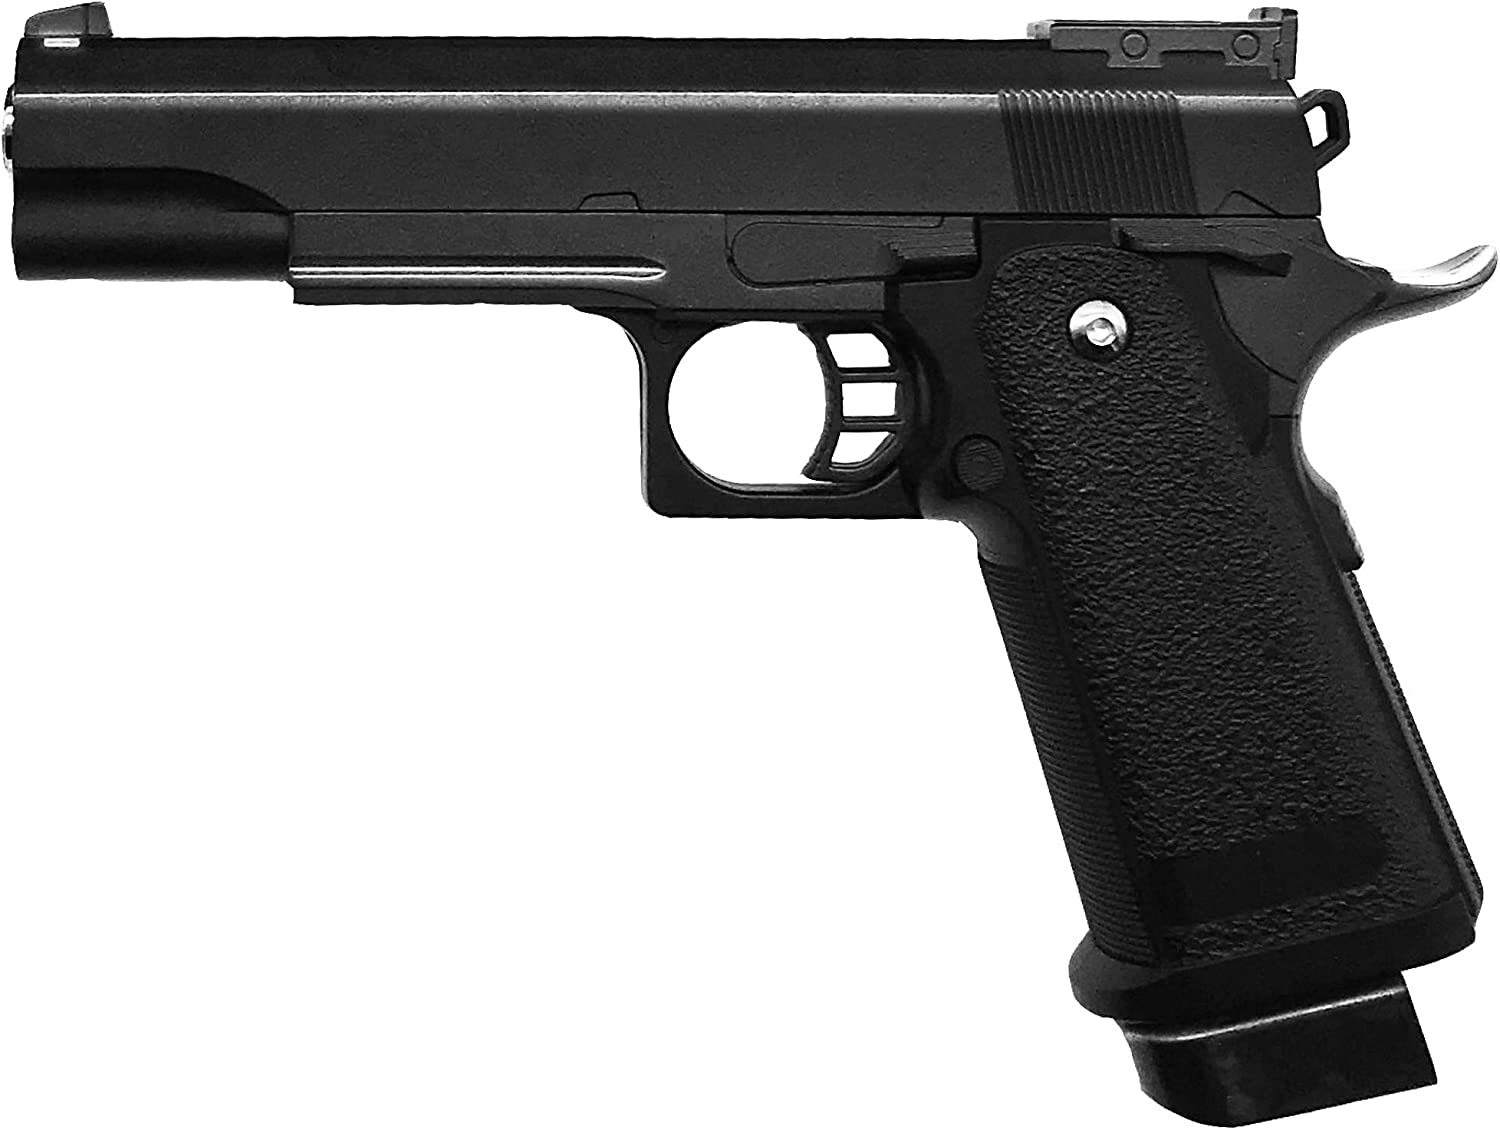 Rayline Airsoft Pistola Softair G6 Metal Completo (presión de Resorte Manual), Escala 1: 1, Peso 528 g, Longitud 22 cm, (Menos de 0,5 Julios - a Partir de 14 años)